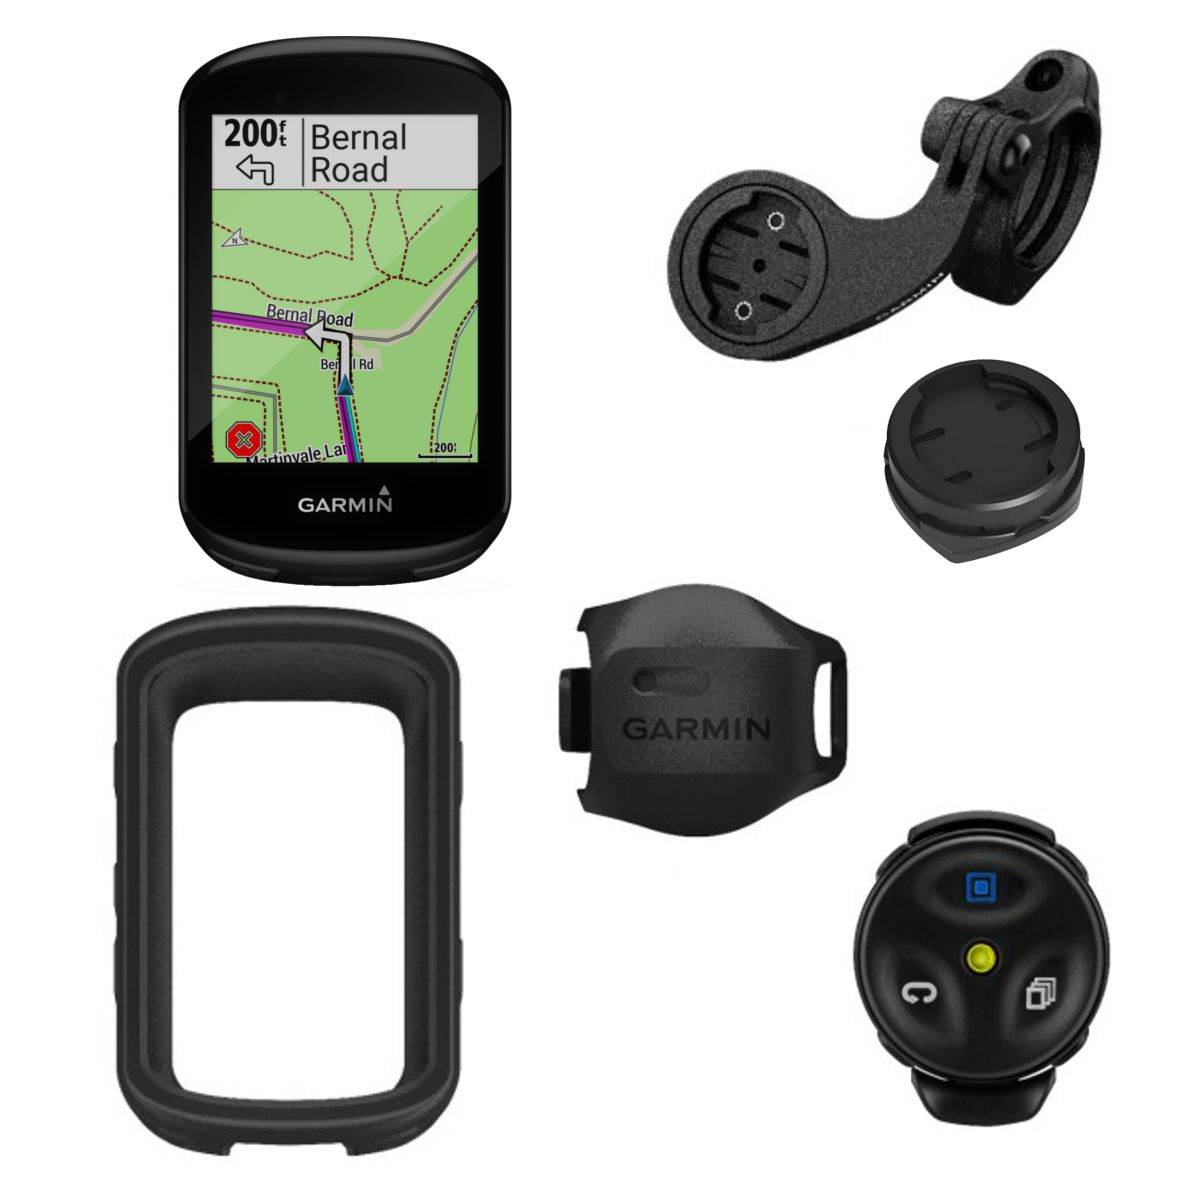 Garmin Edge 830 GPS Bike Computer MTB Bundle with V Sensor + Remote Control + Sleeve | Cykelcomputere